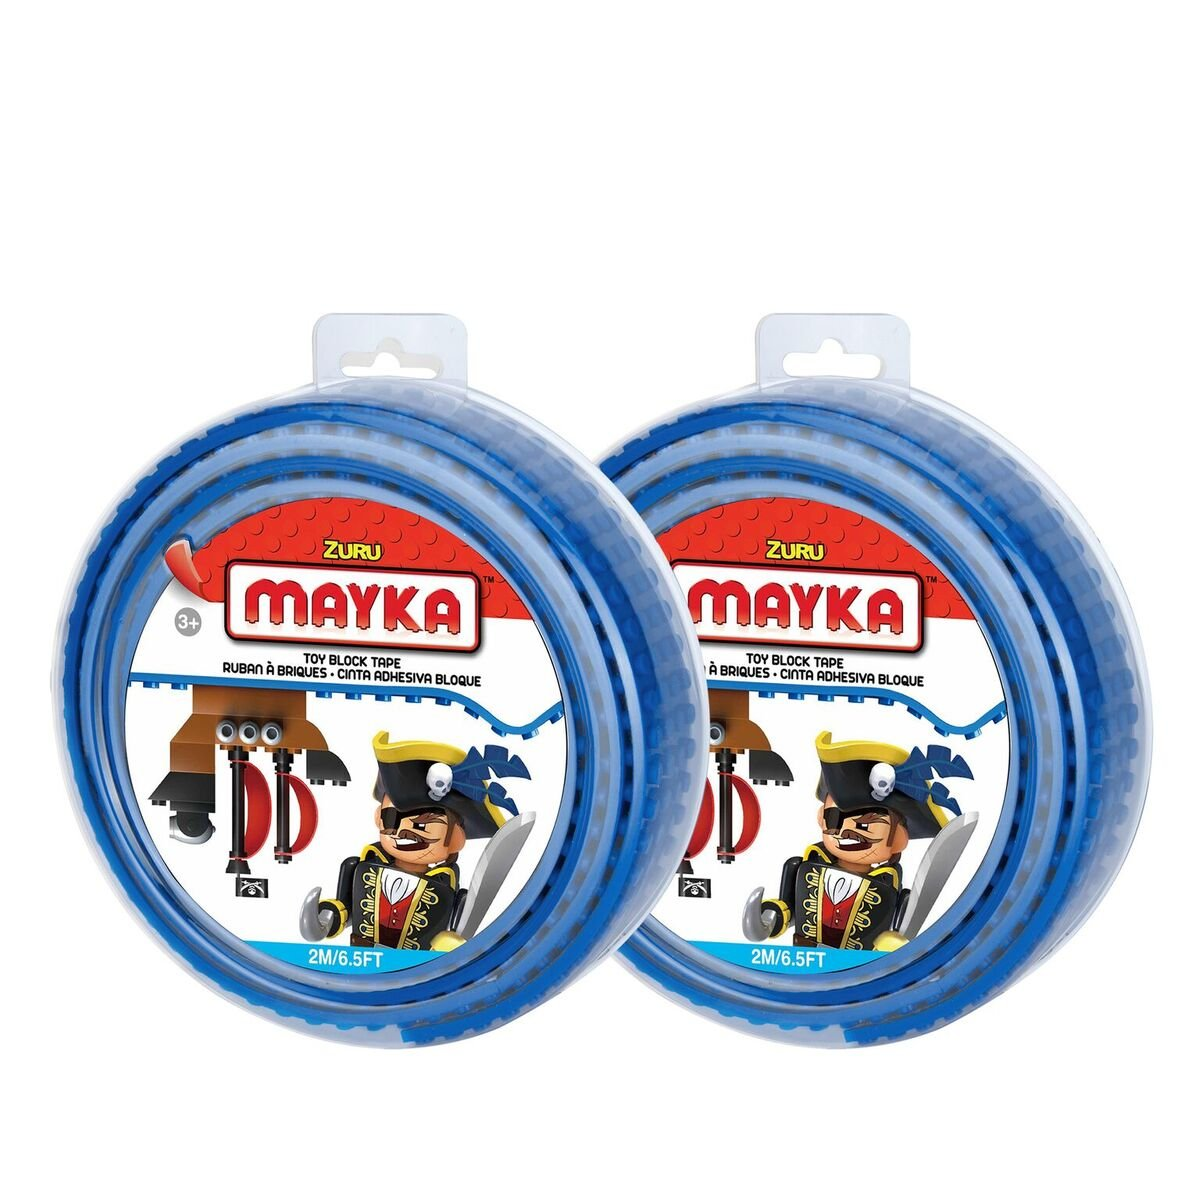 Mayka Toy Block Tape 4 Stud Blue 6 Feet 2 Pack Compatible Lego Blok Creative Toys Isi 100 Pcs